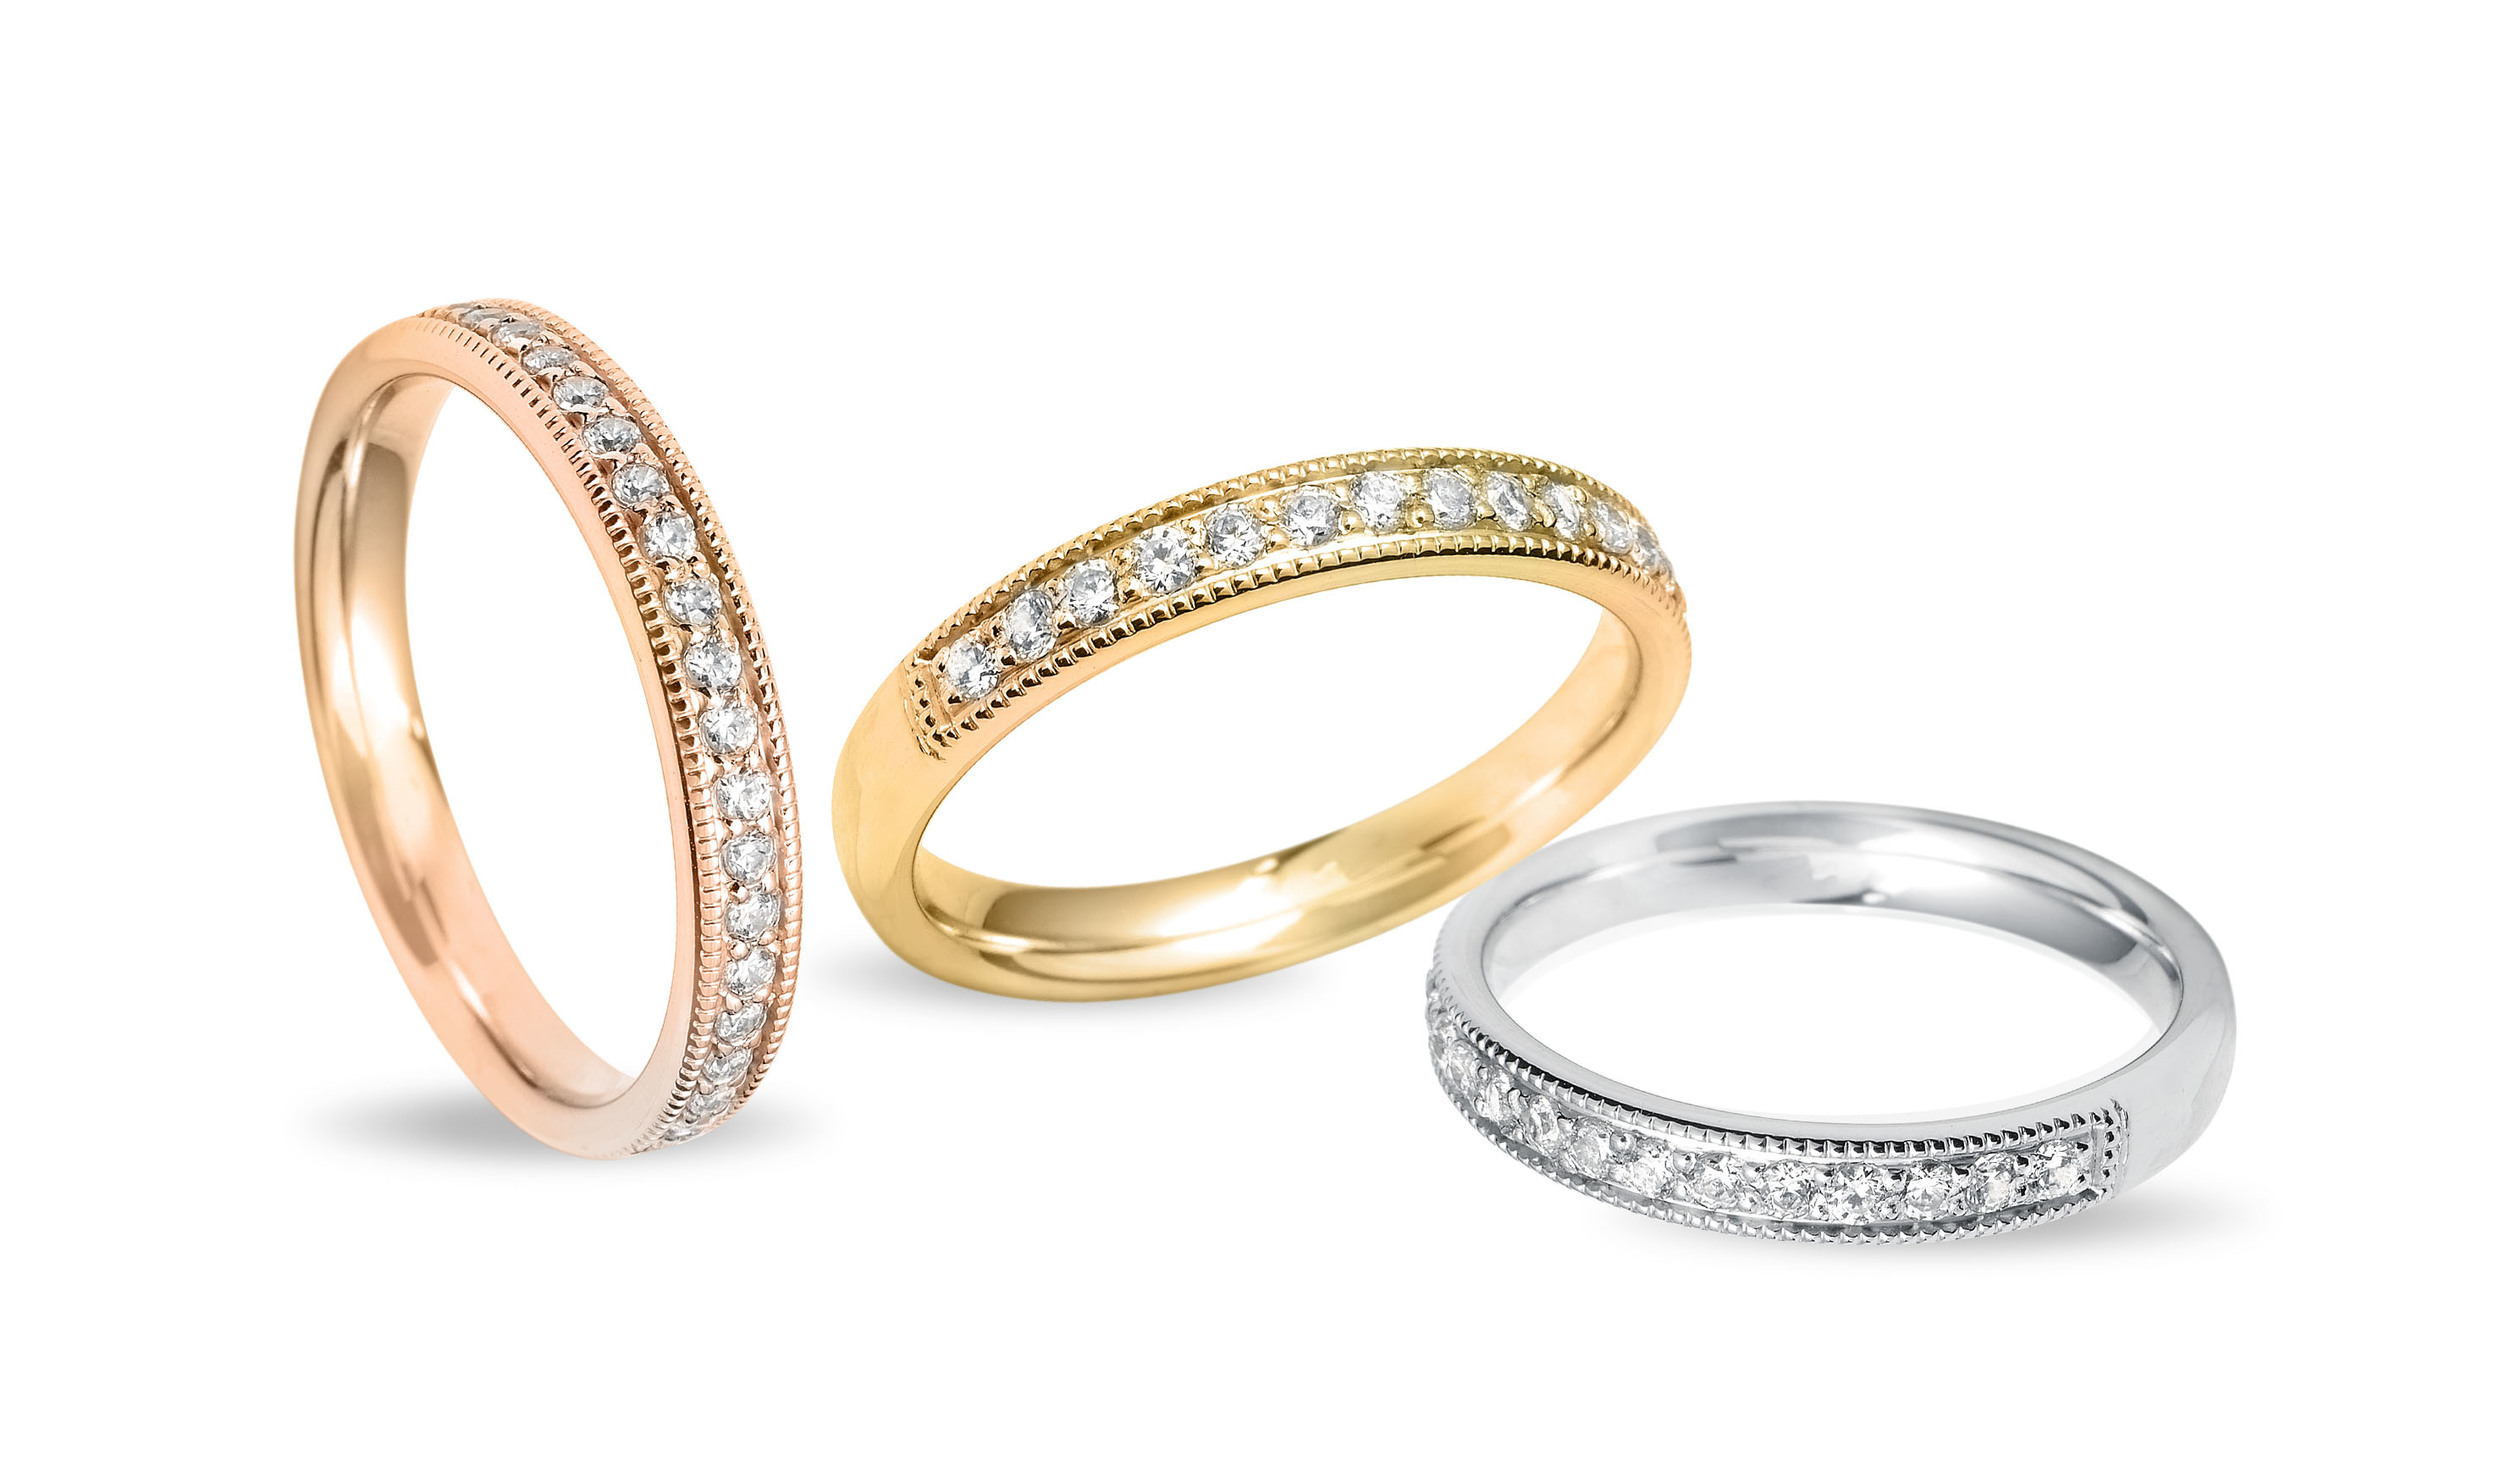 18ct rose, yellow and white gold vintage diamond wedding rings